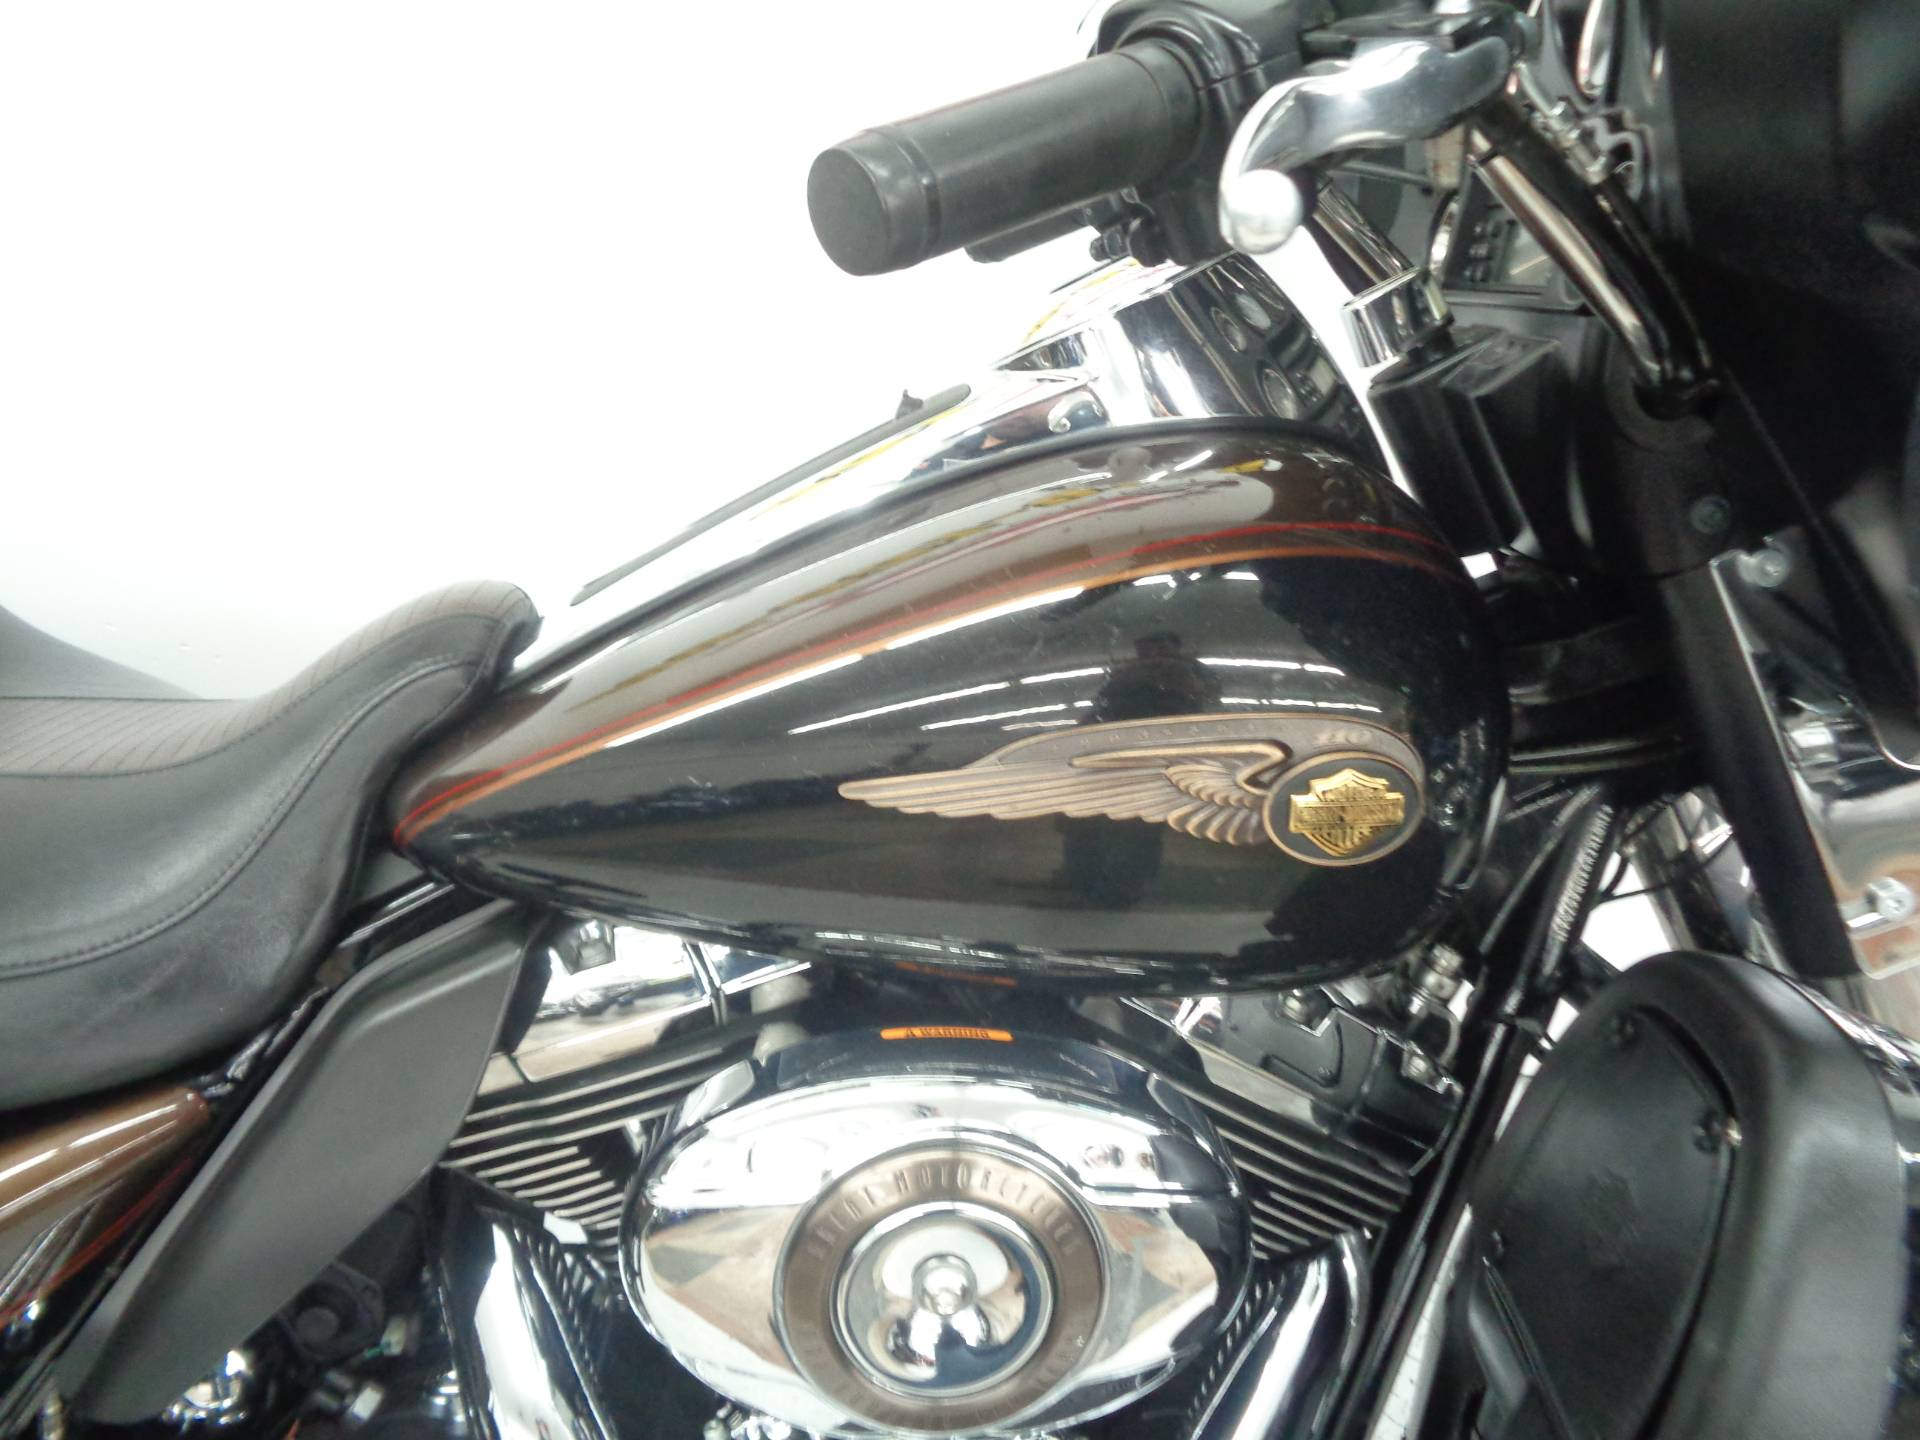 2013 Harley-Davidson Electra Glide® Ultra Limited 110th Anniversary Edition in Tulsa, Oklahoma - Photo 10